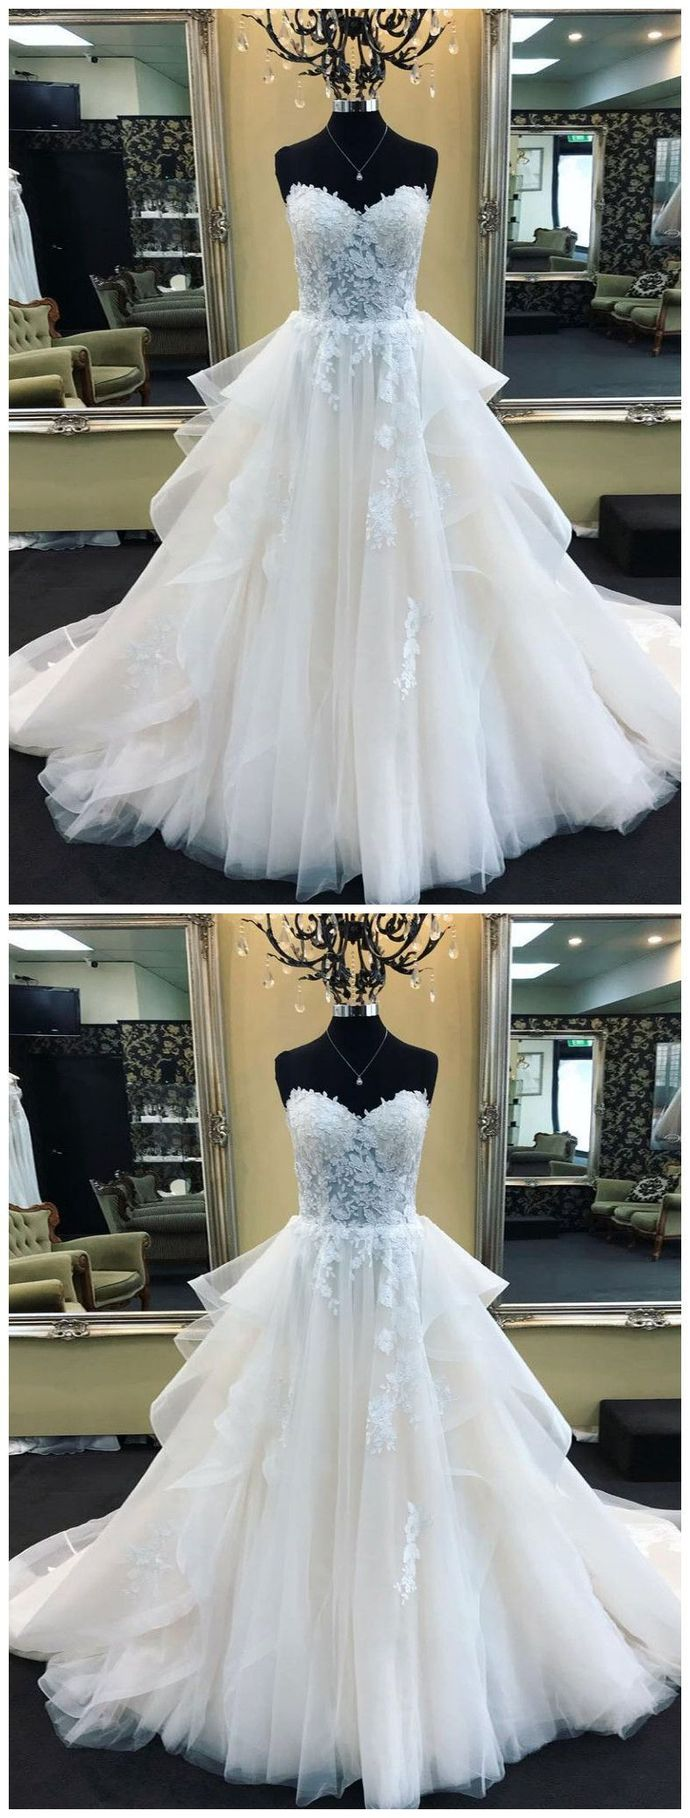 Sweetheart Neck Tulle White Wedding Dresses, Elegant Appliques Formal Bridal Dresses